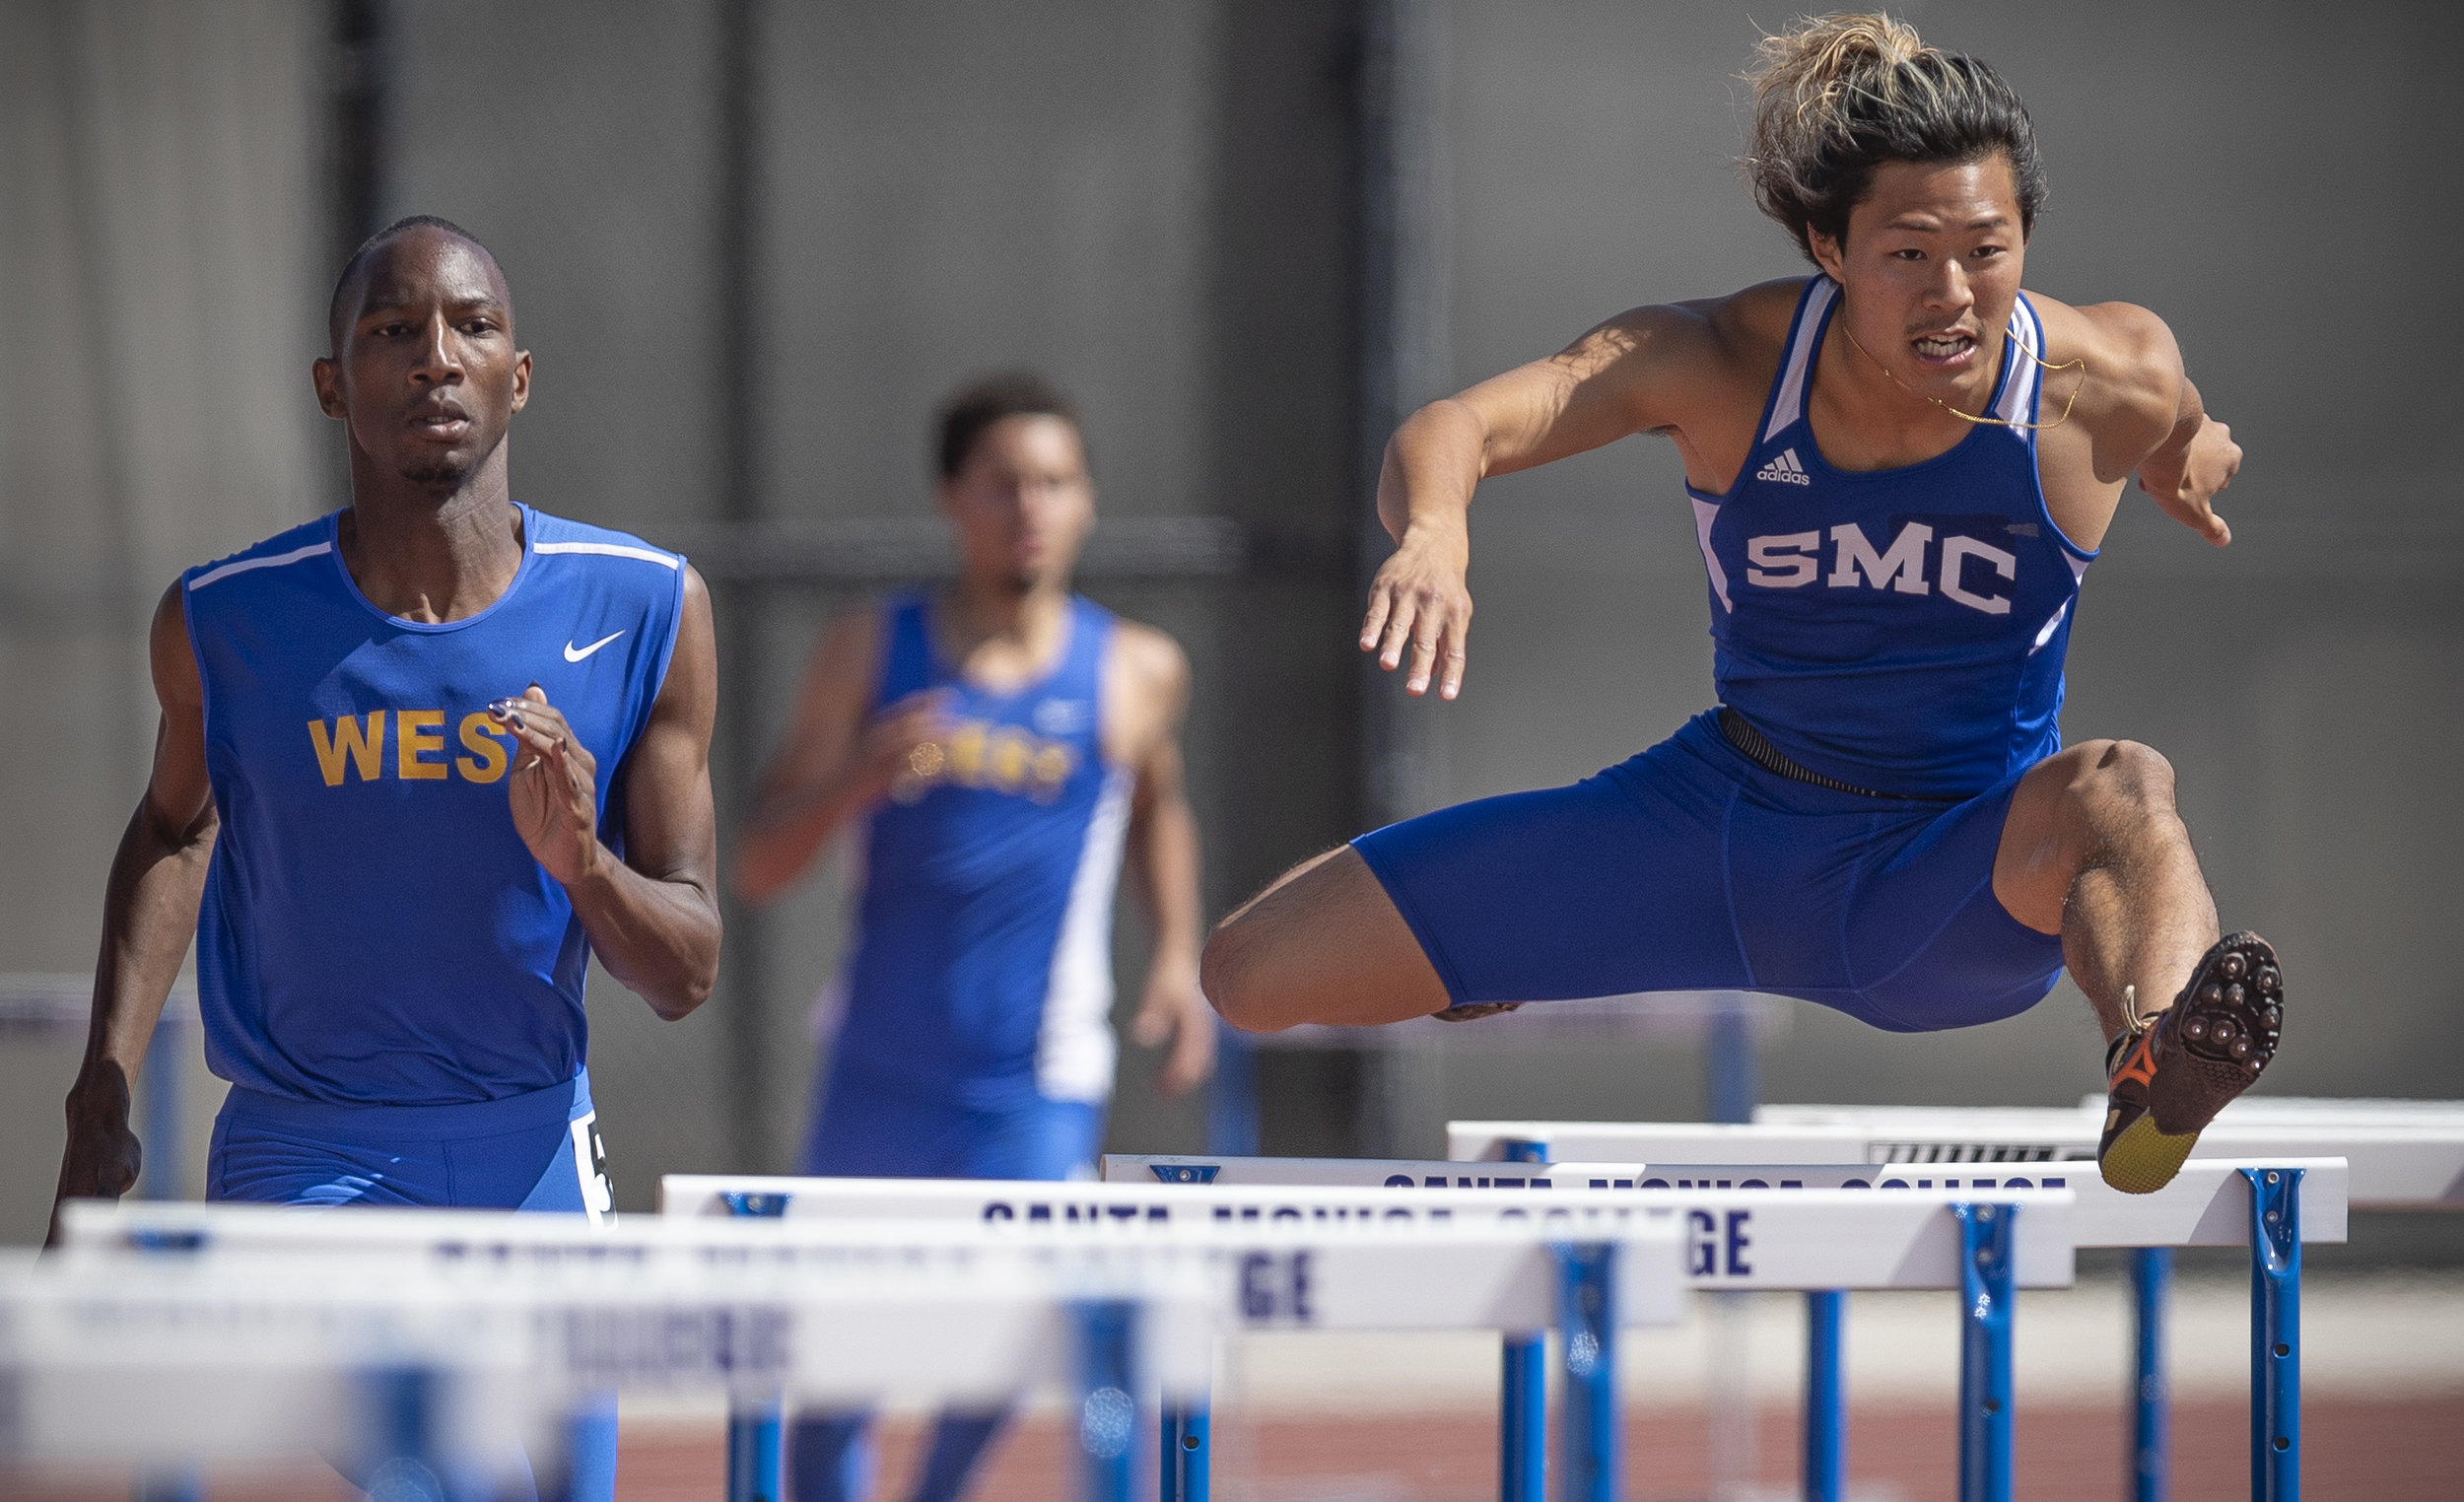 Santa Monica College 400 meter hurdle track and field athlete Gentore Sasaki (right) placed second in heat 2 of 3 during SMC's   preliminaries at Santa Monica College, on friday, April 20th, 2018, in Santa Monica, Calif.. (Photo By: Daniel Bowyer / Corsair Contributor)